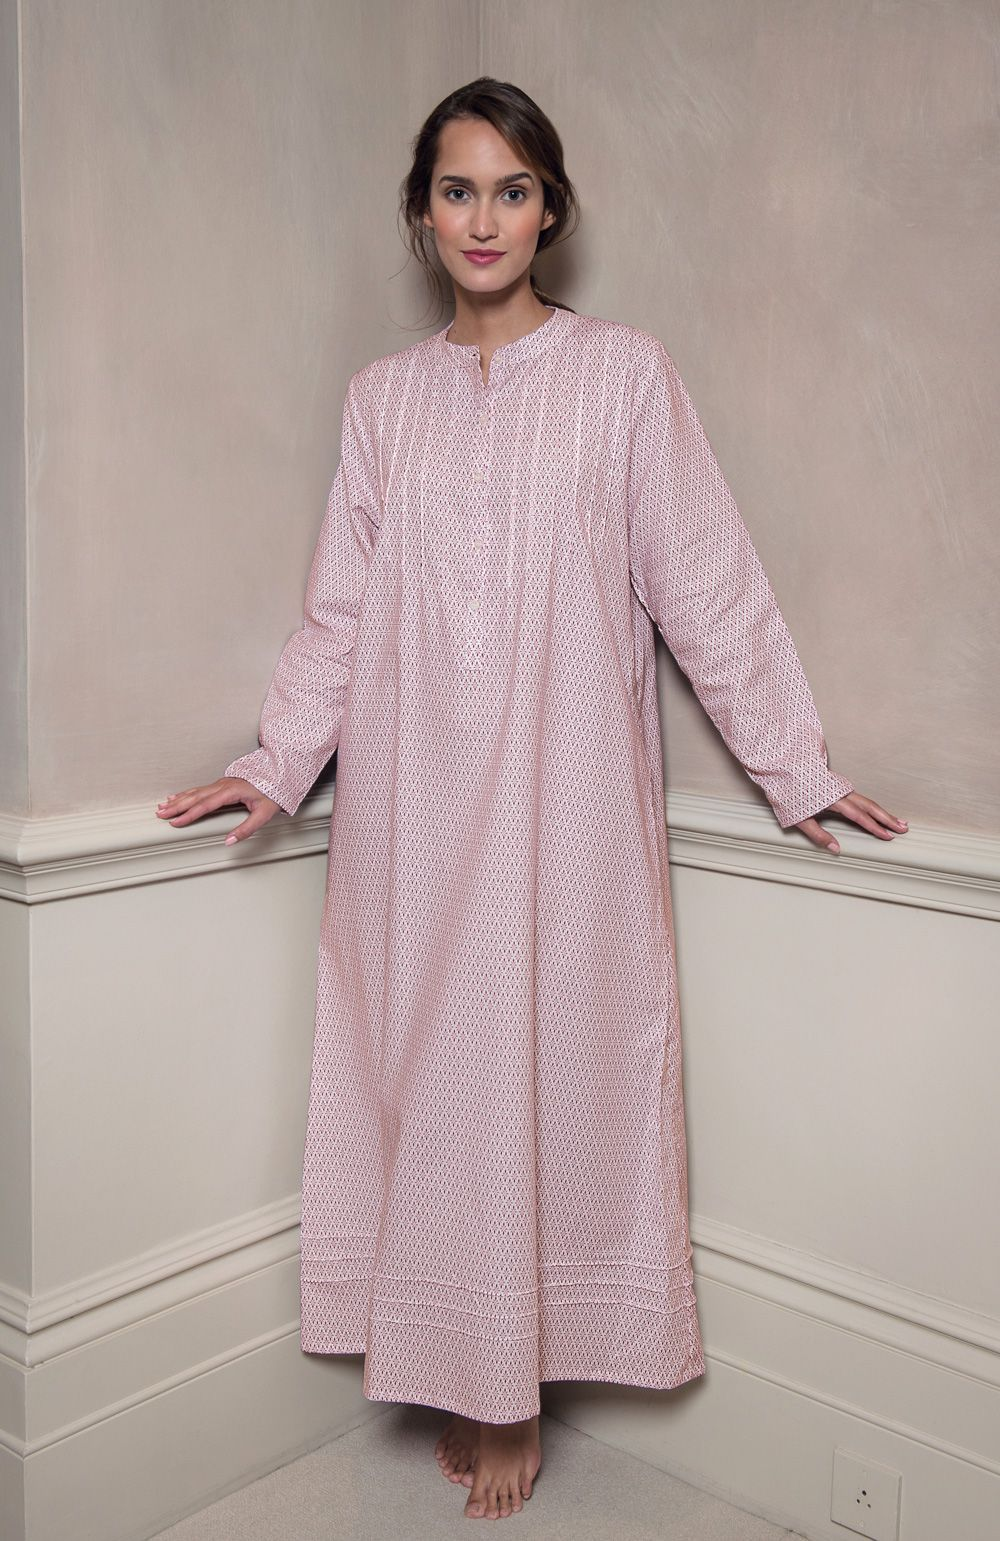 570355630895 Sophie Lightly Brushed Cotton Nightdress (soph) - Berry Snowflake in ...